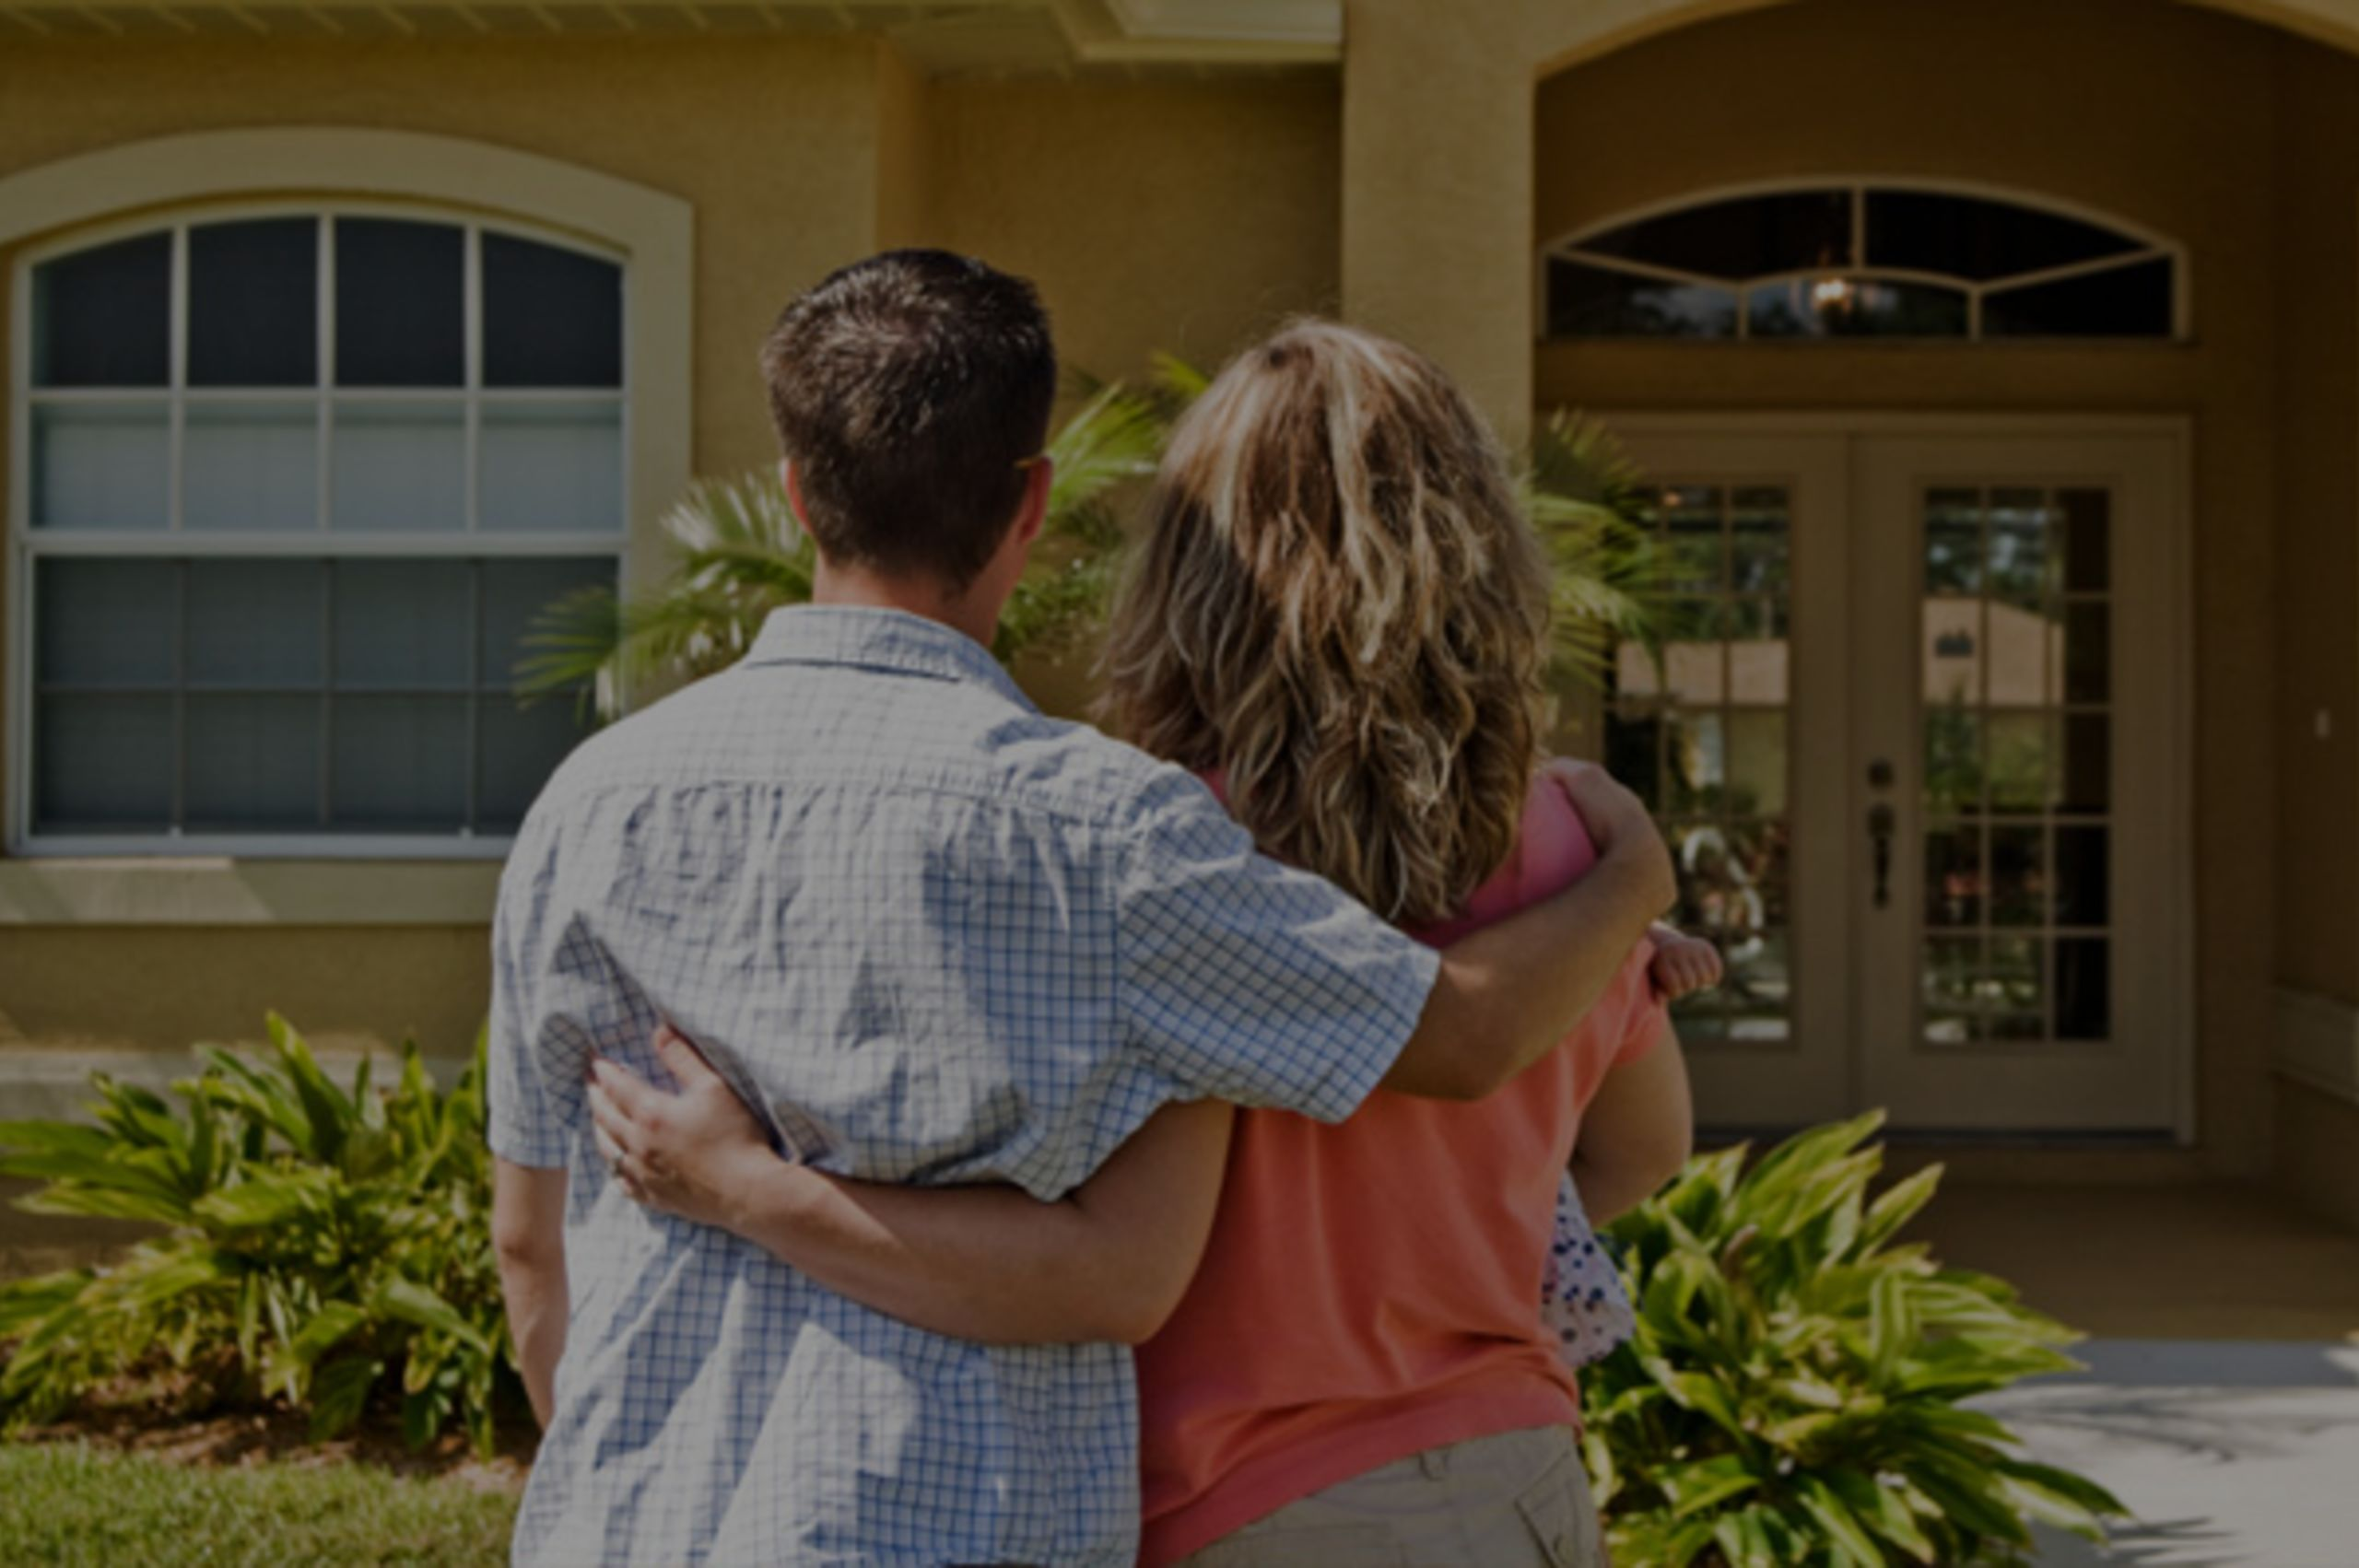 5 Simple Steps to Ease into Being a New Homeowner